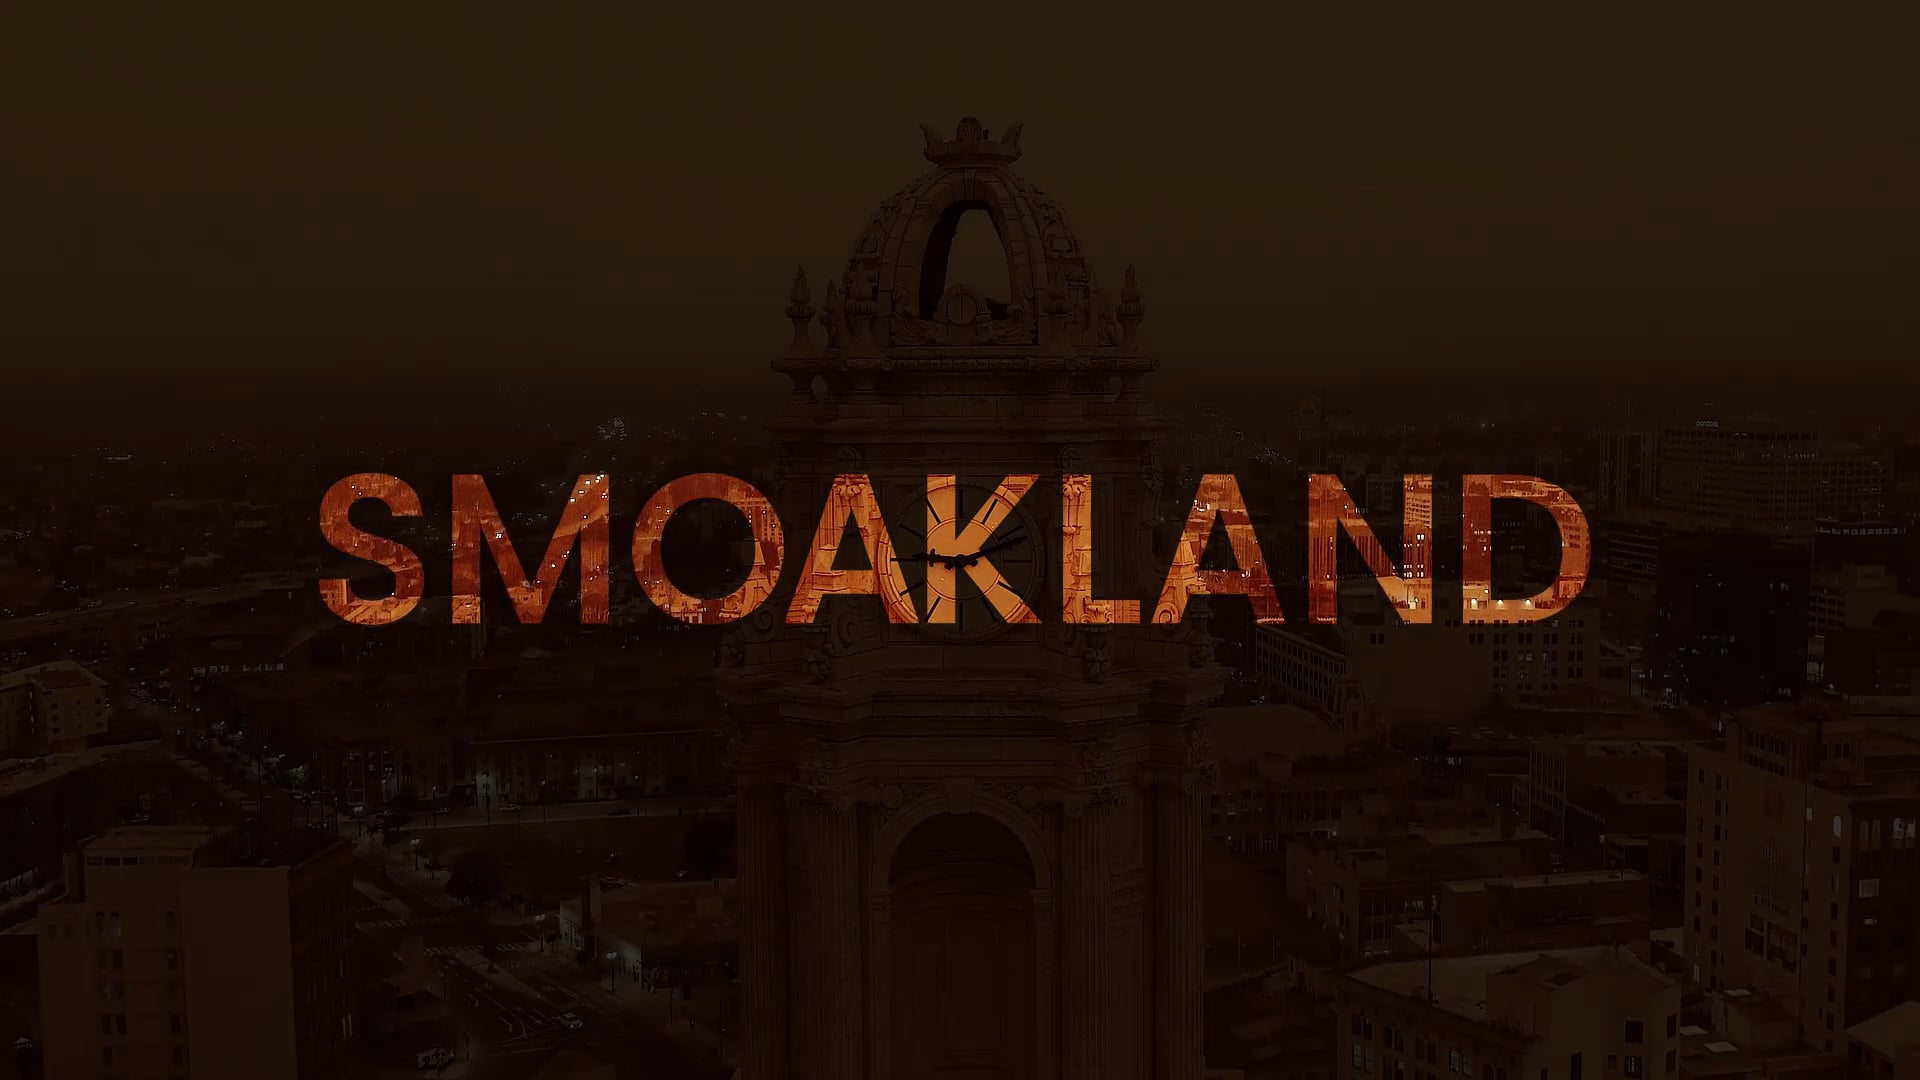 SMAOAKLAND // Sept 9, 2020 from 9 to 10 AM